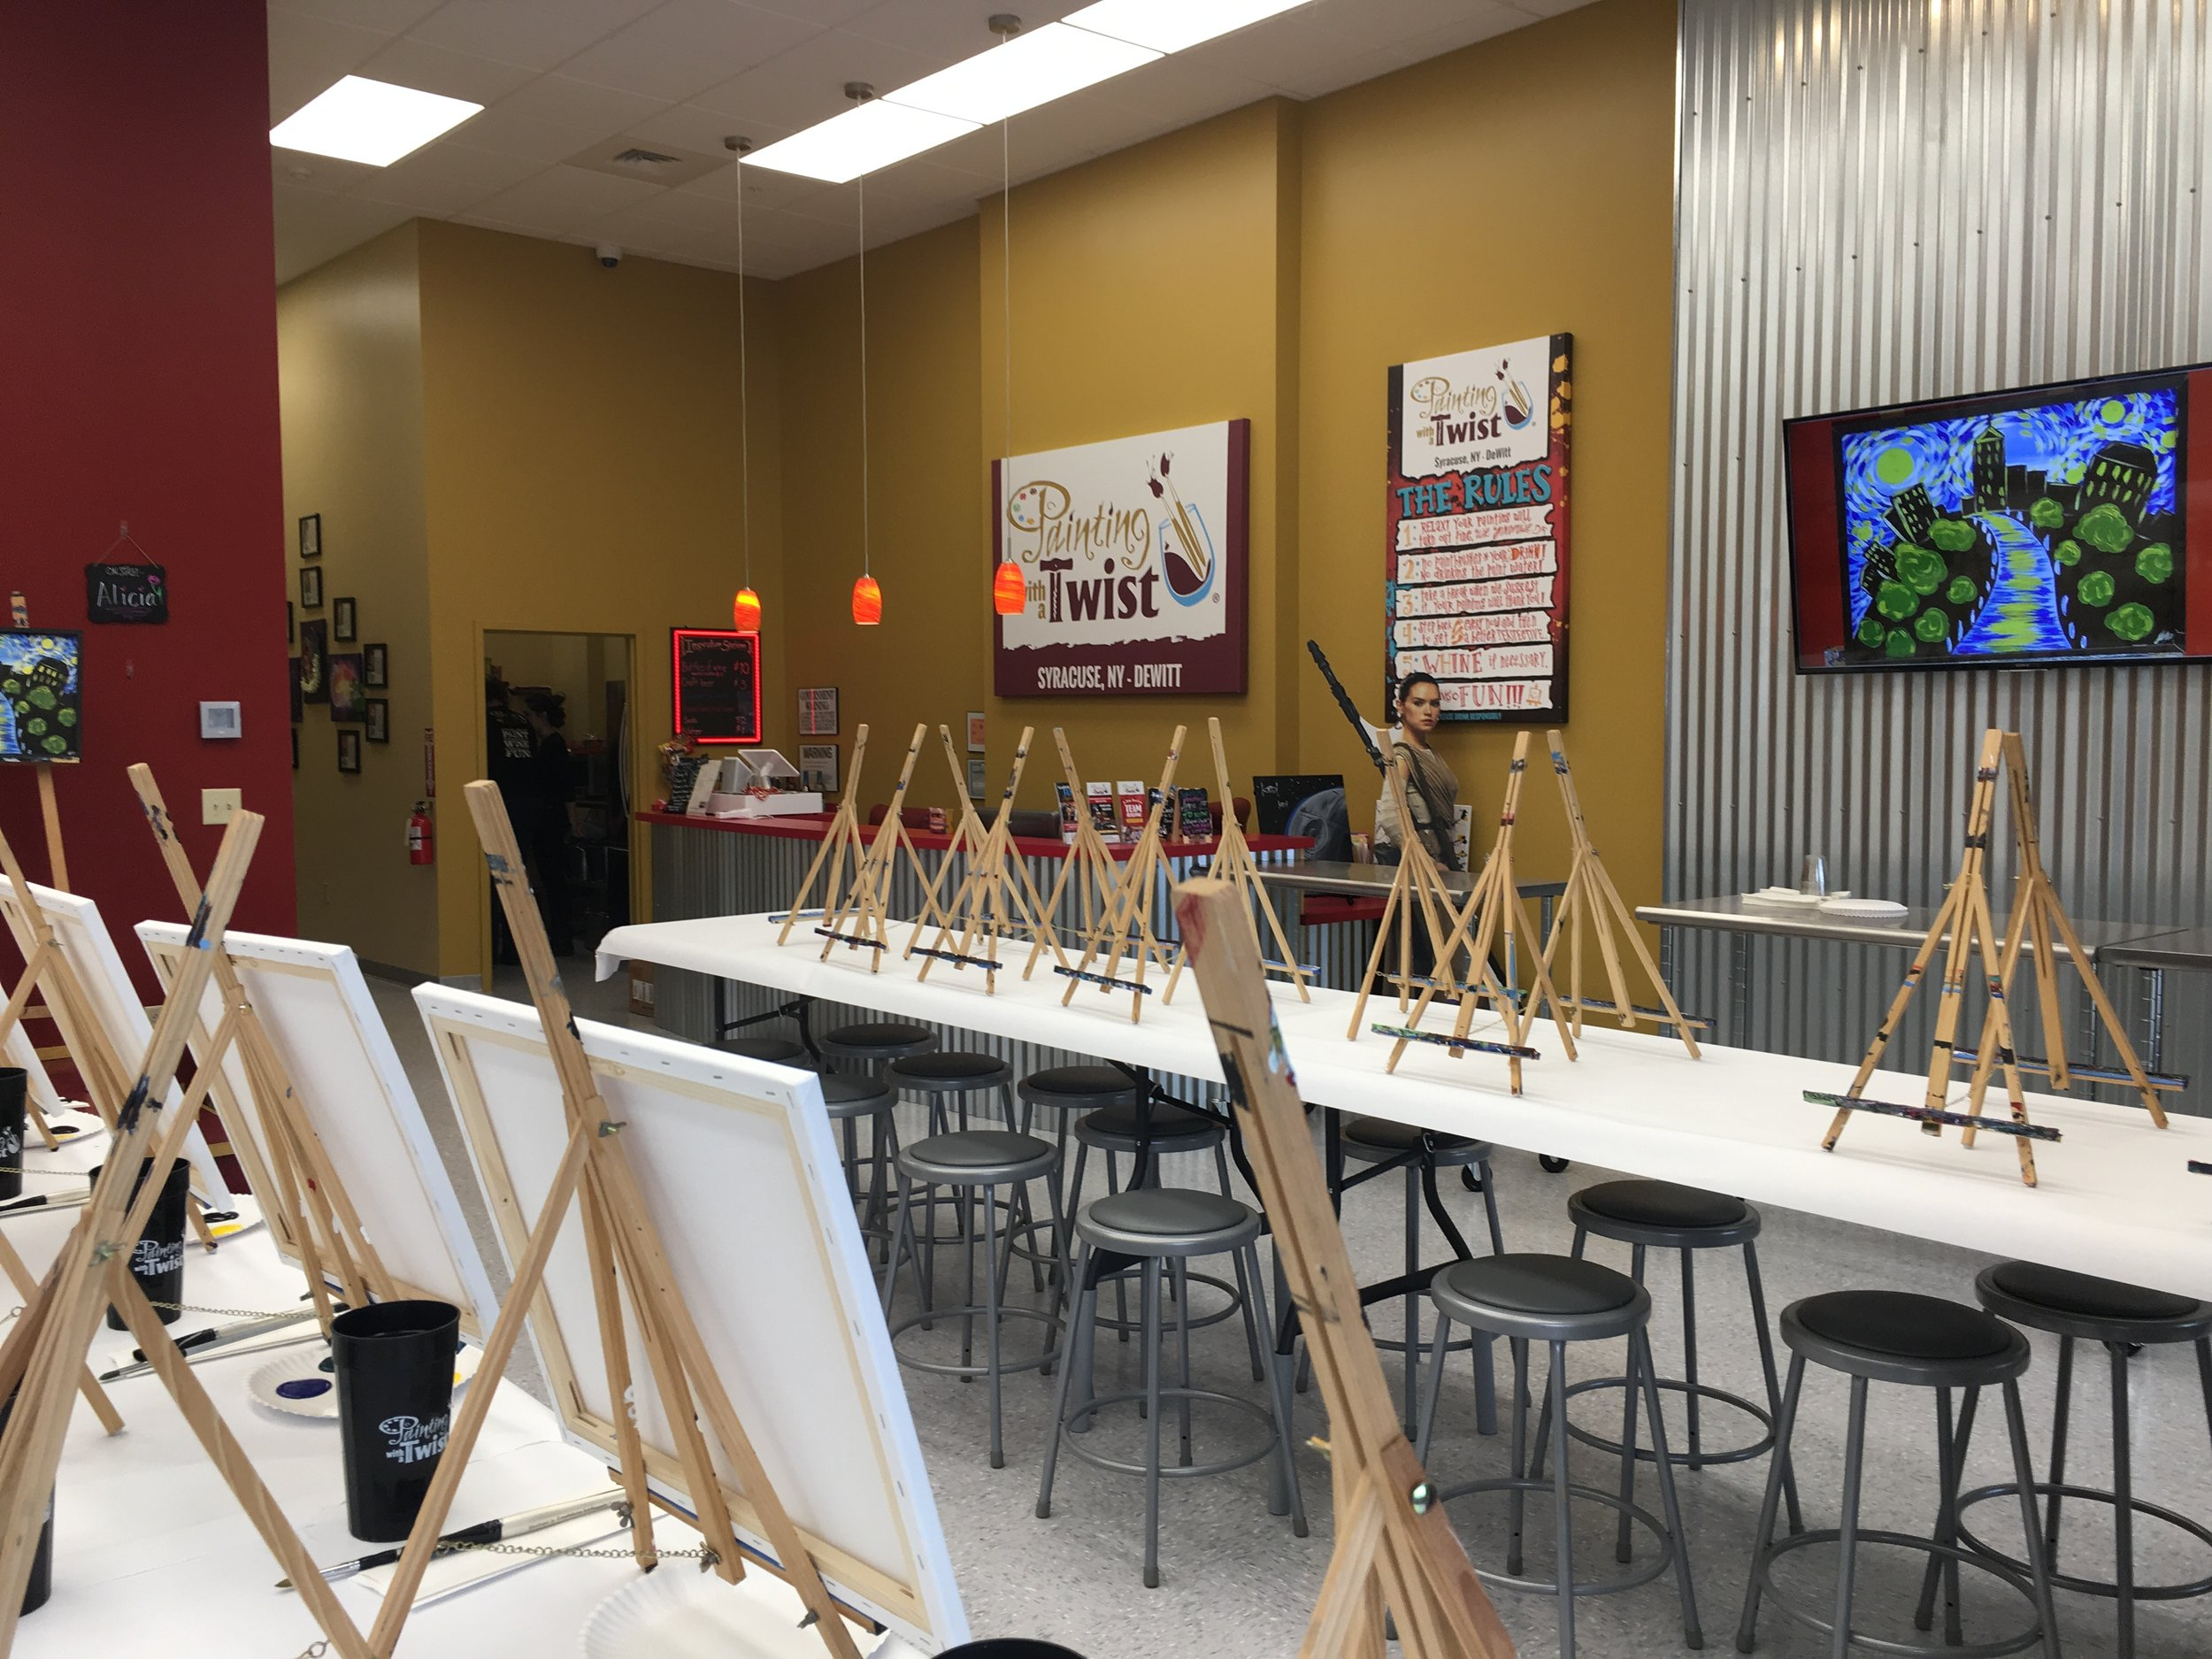 Design Bank Twist.Painting With A Purpose To Benefit The Cny Diaper Bank Cny Diaper Bank